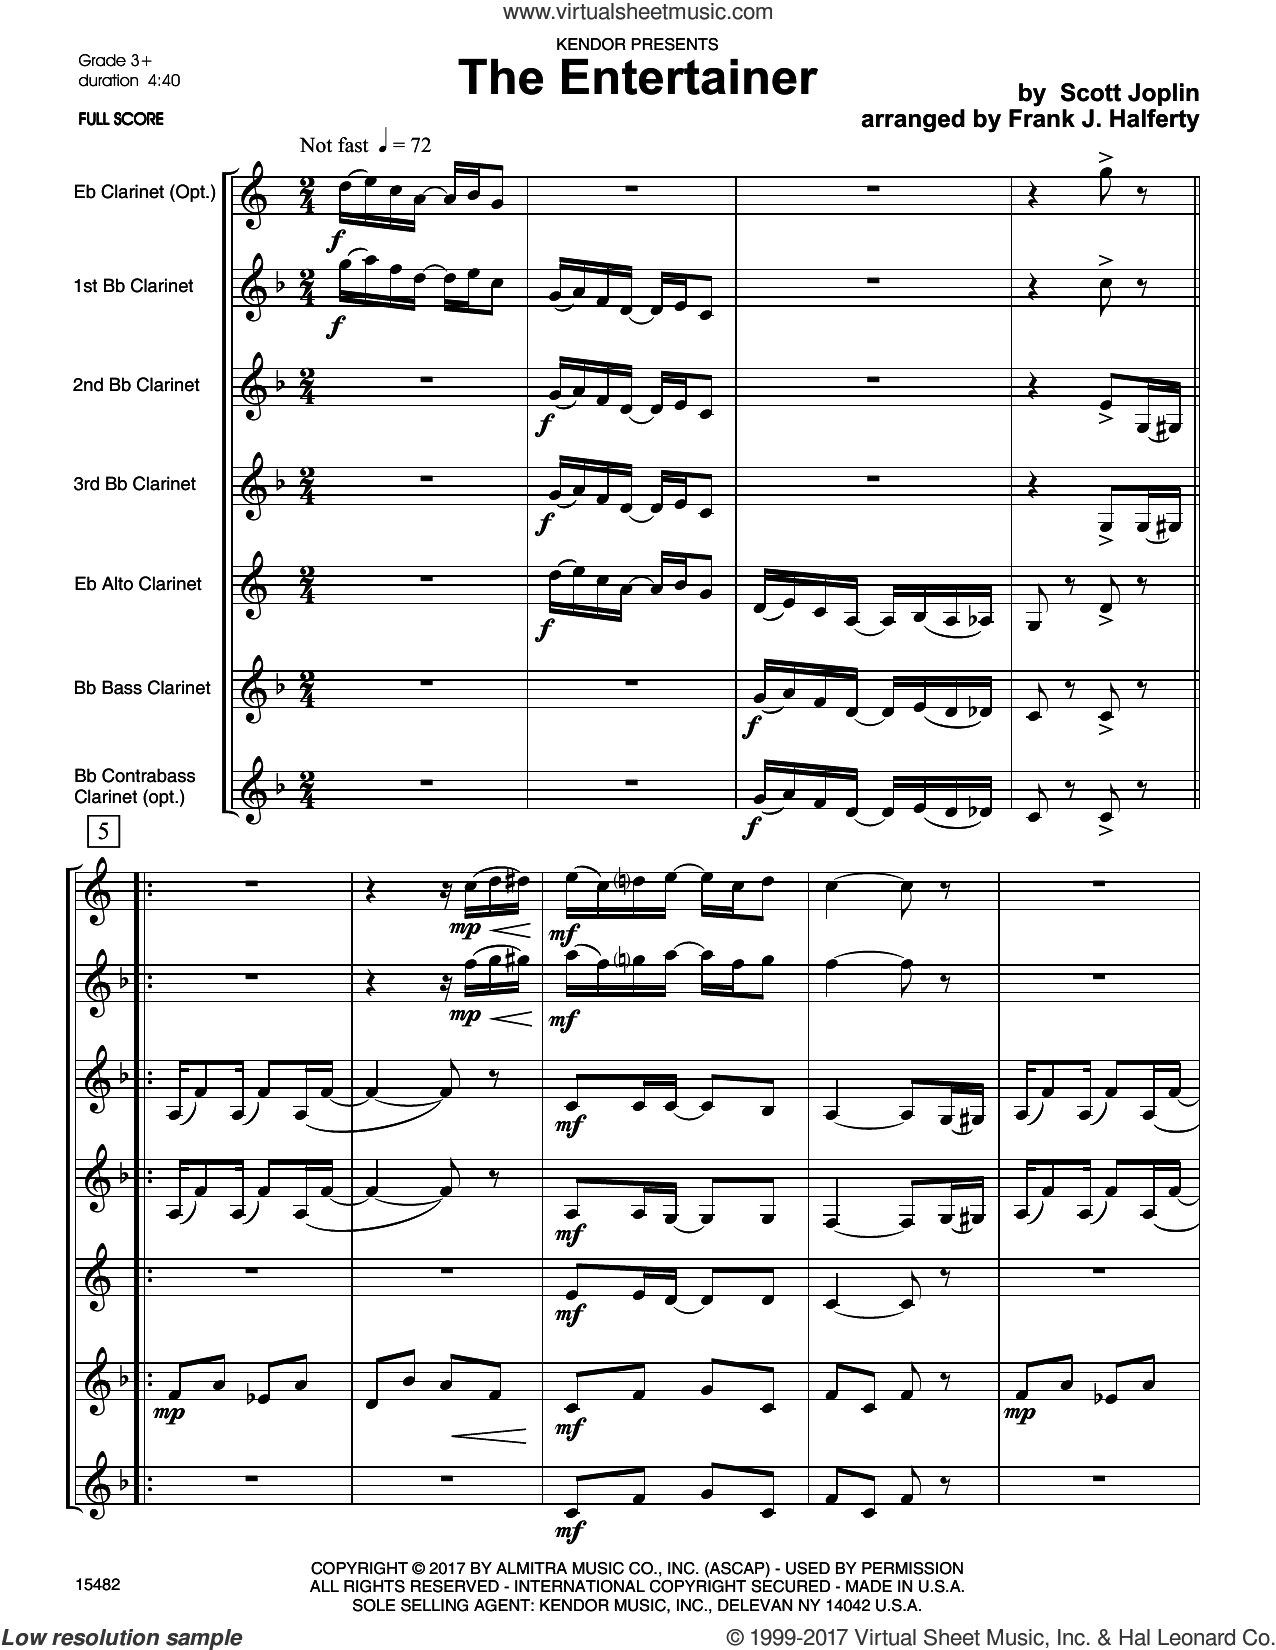 The Entertainer (COMPLETE) sheet music for clarinet septet by Frank J. Halferty and Scott Joplin, intermediate